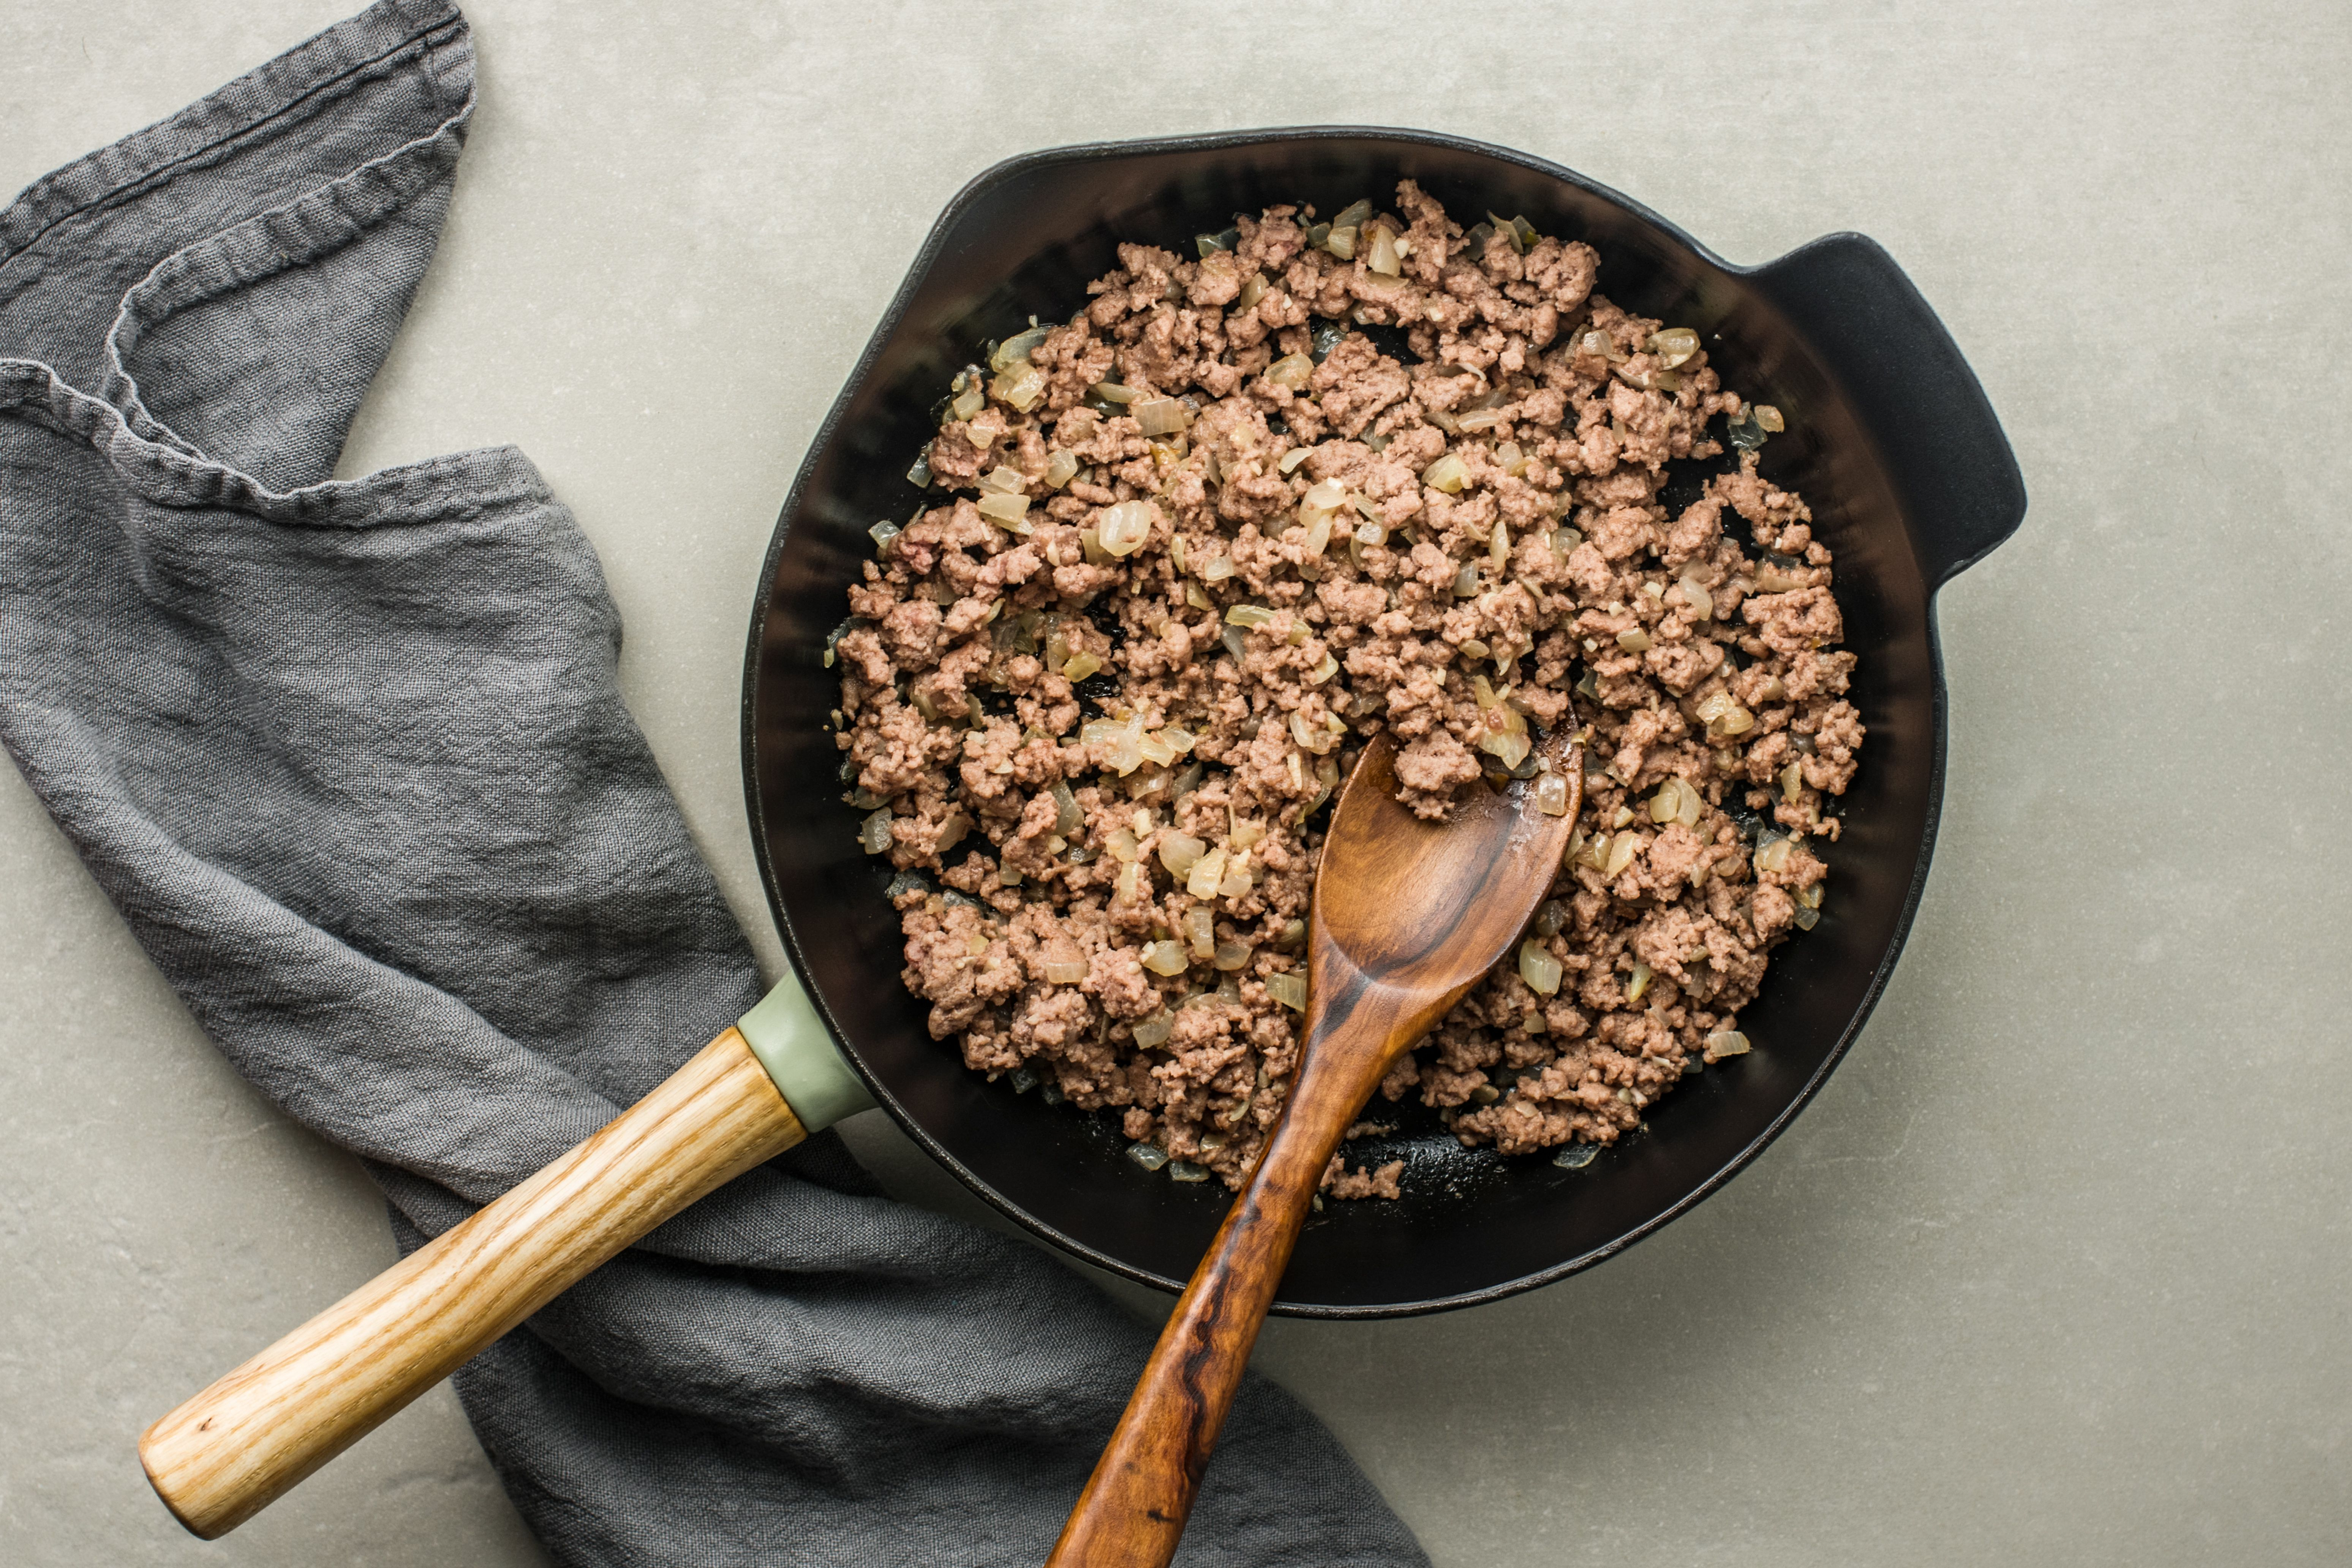 Cooked ground beef in skillet